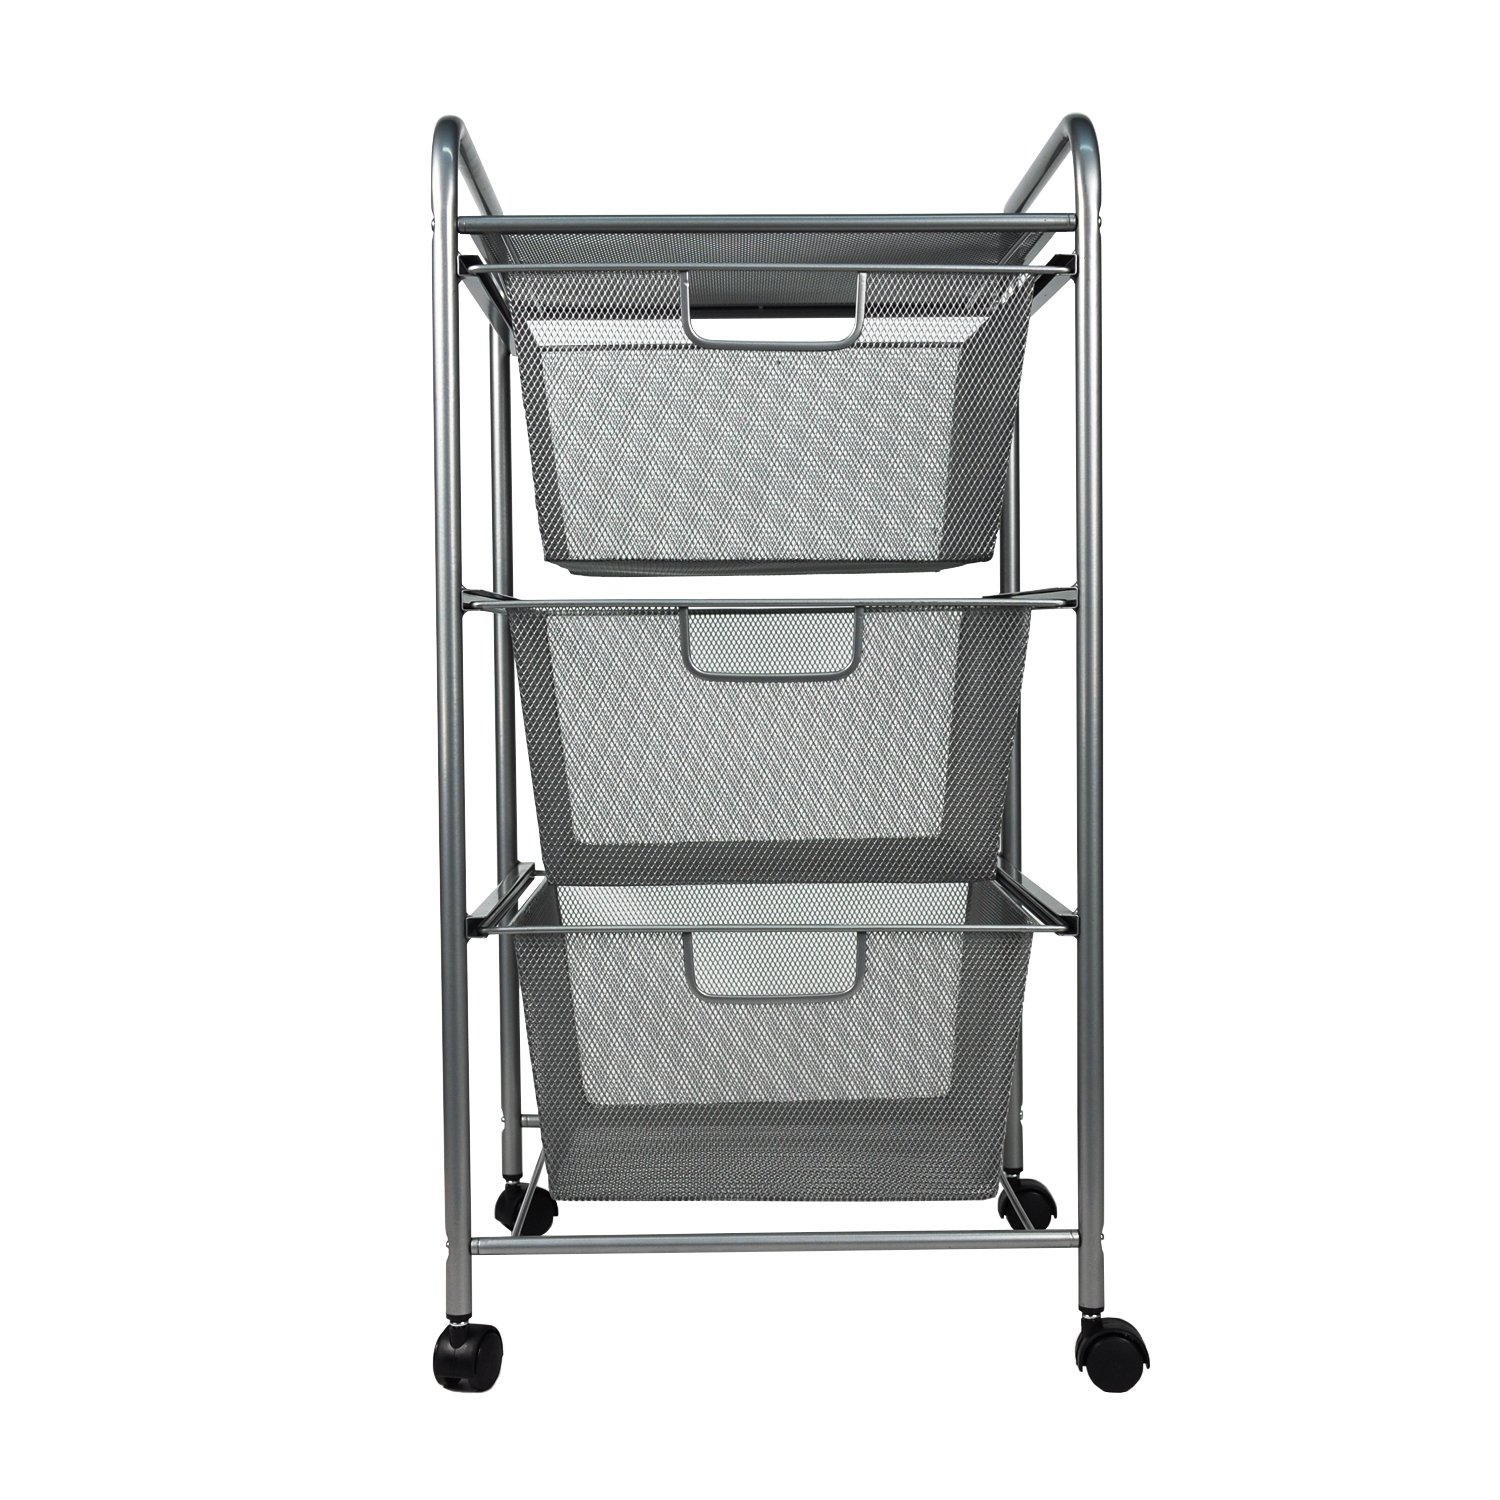 YIMU 3 Tier Metal Mesh Rolling Cart with 3 Drawers, Office& Kitchen Storage with Rolling Wheels, Silver, L14 W13 H27 Inches